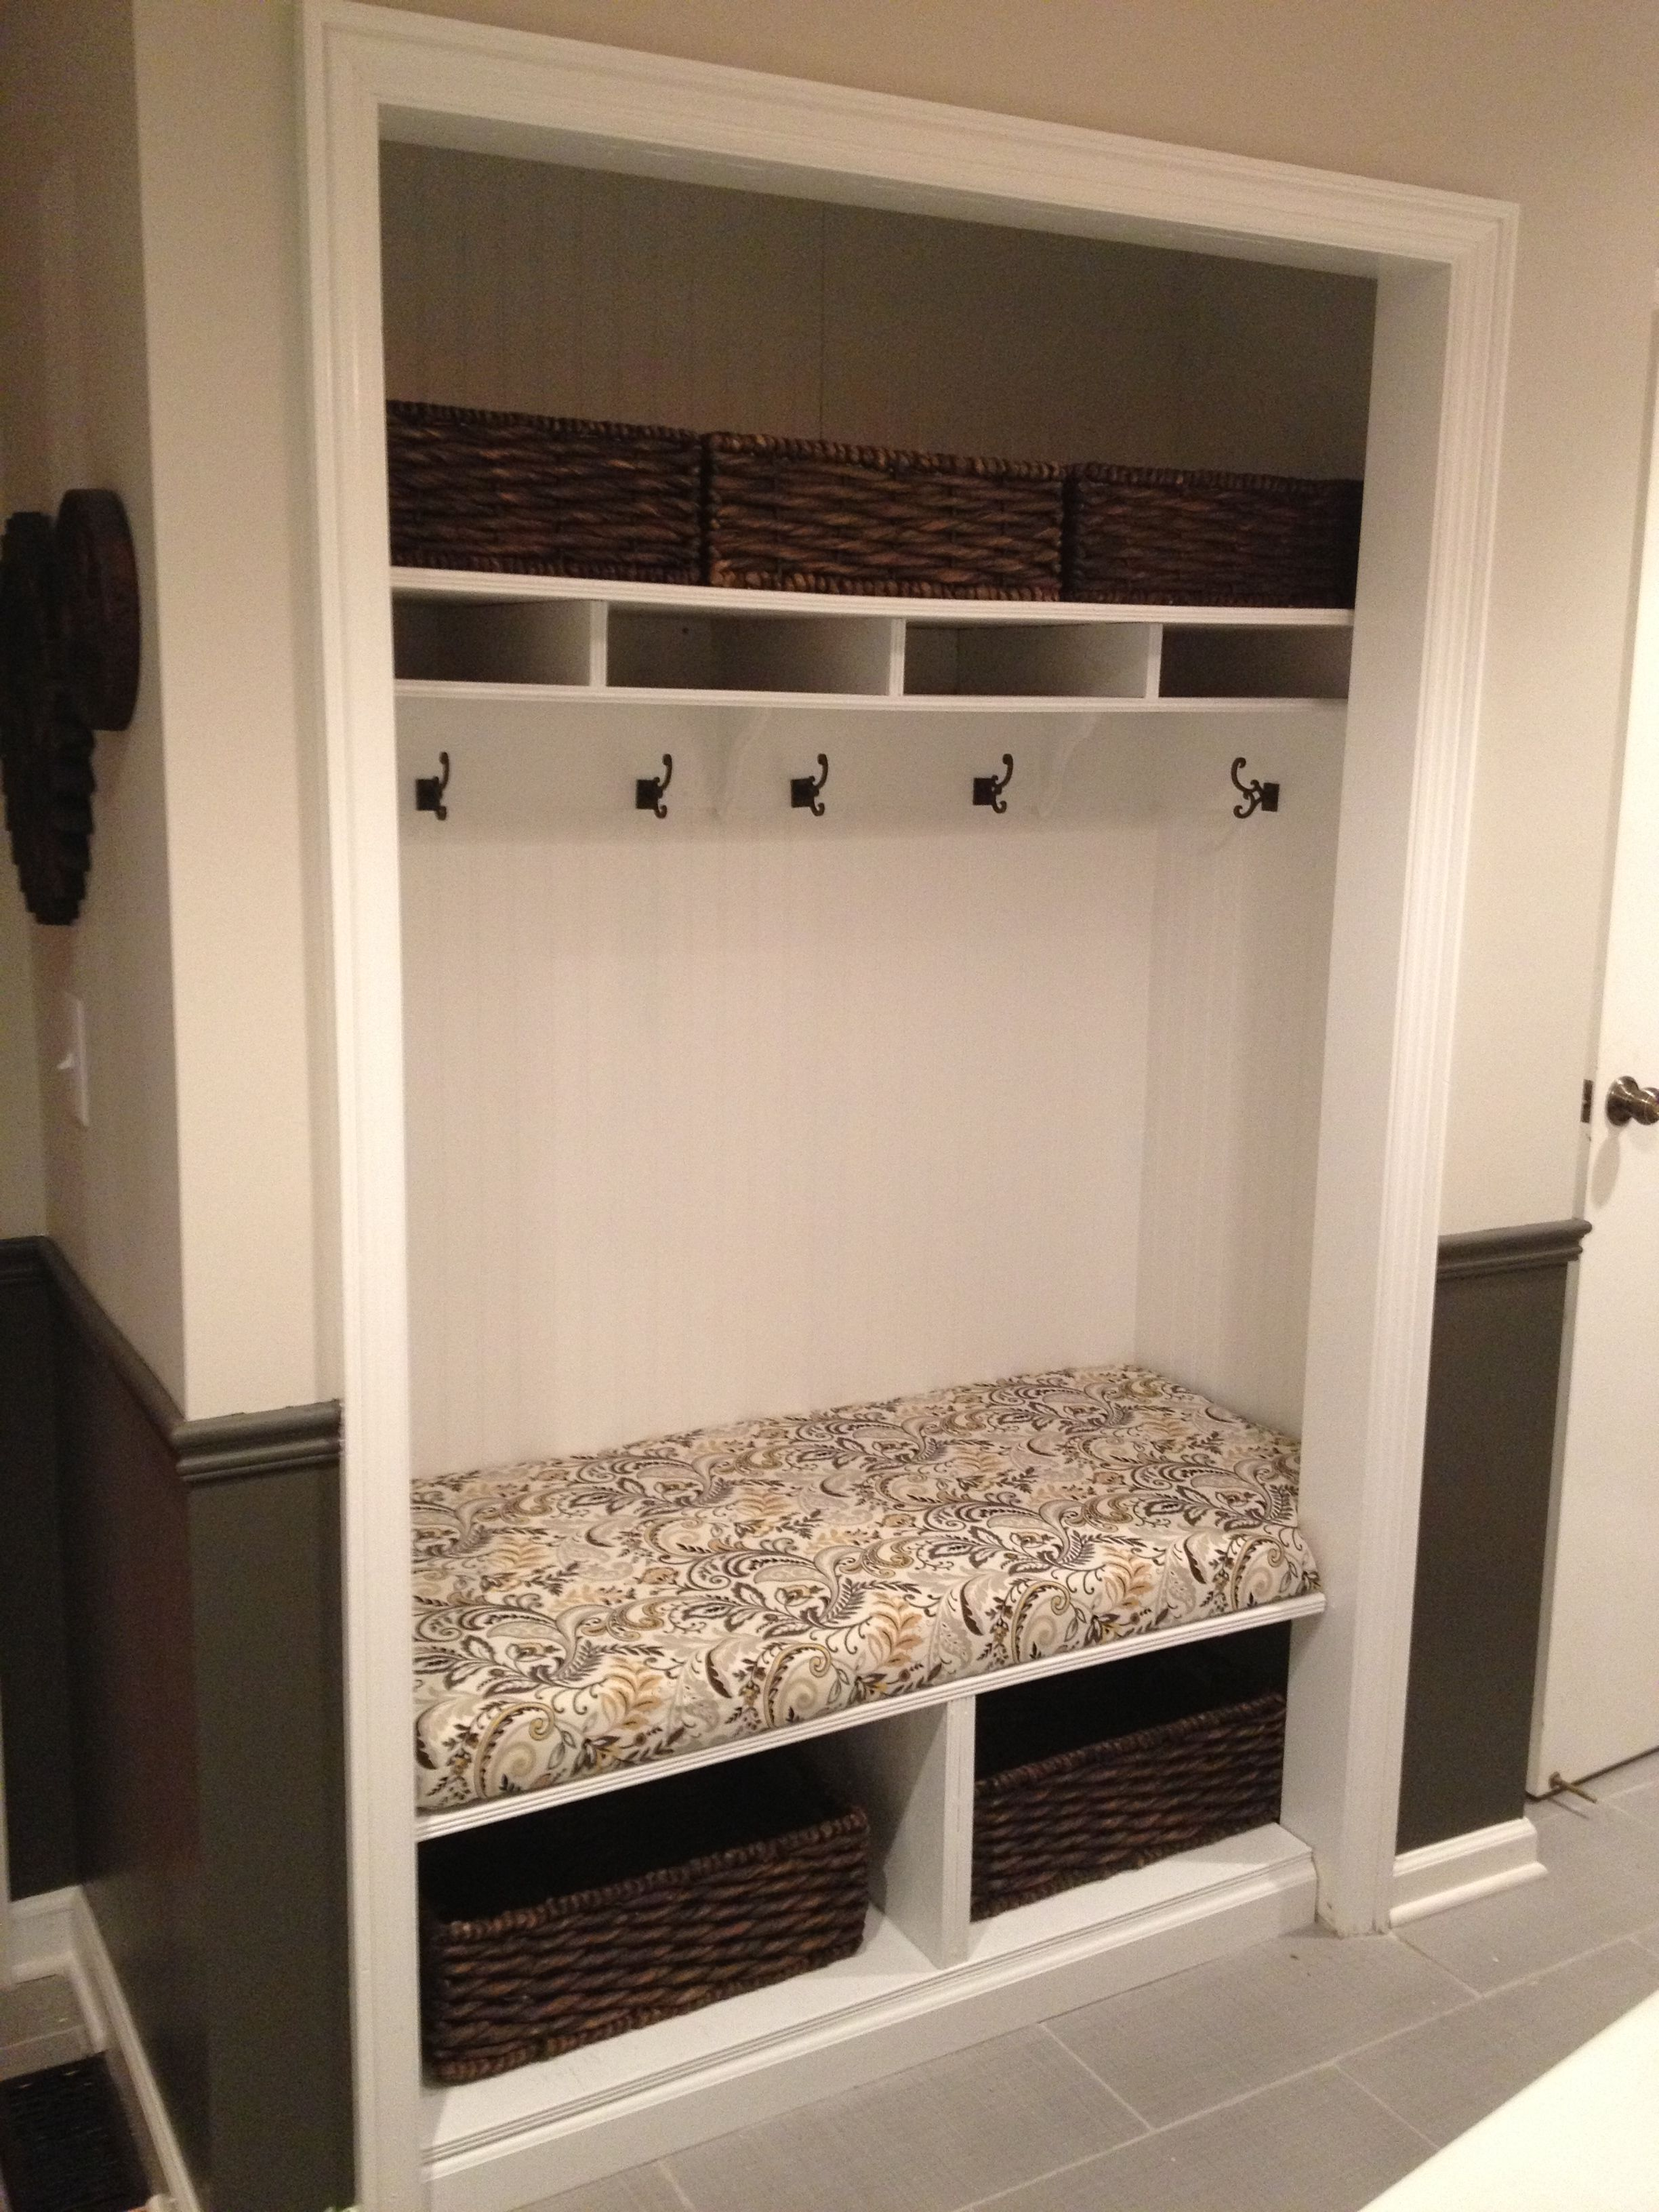 Unused Mudroom Closet Converted Into A Bench With Hooks And Storage    100%  DIY!